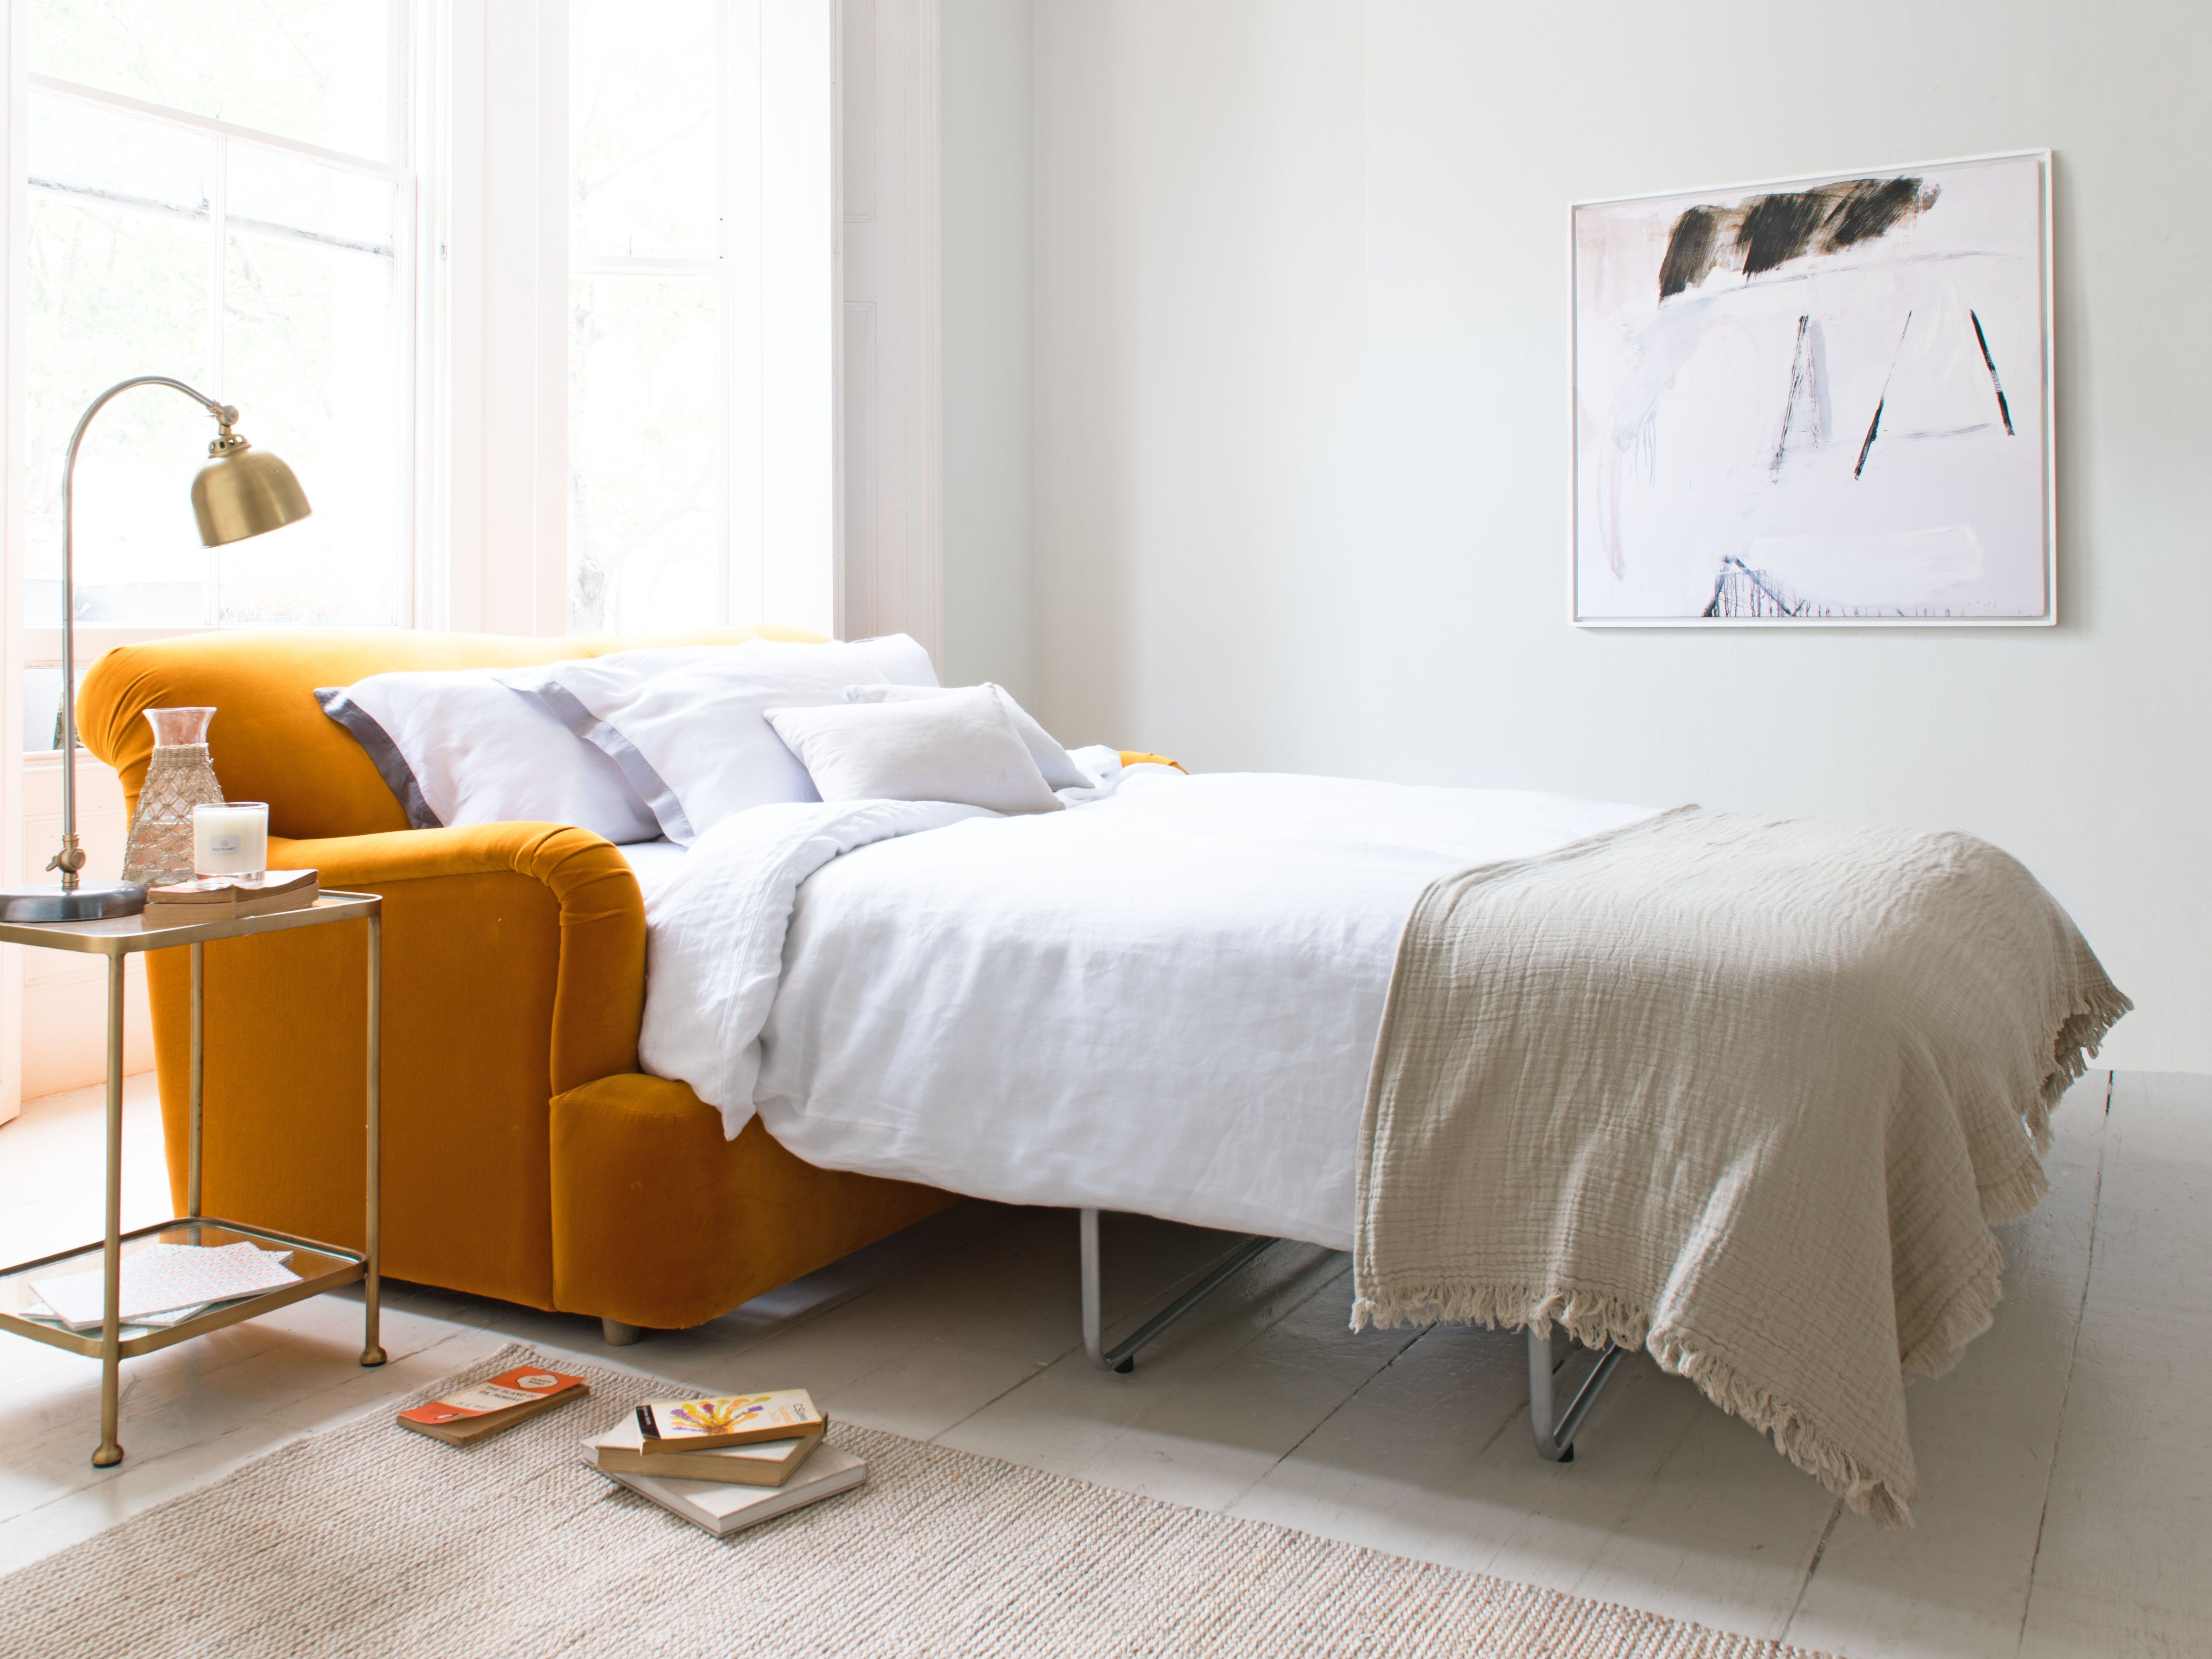 The Perfect Hidden Guest Bed Loaf Sofa bed uk, Living